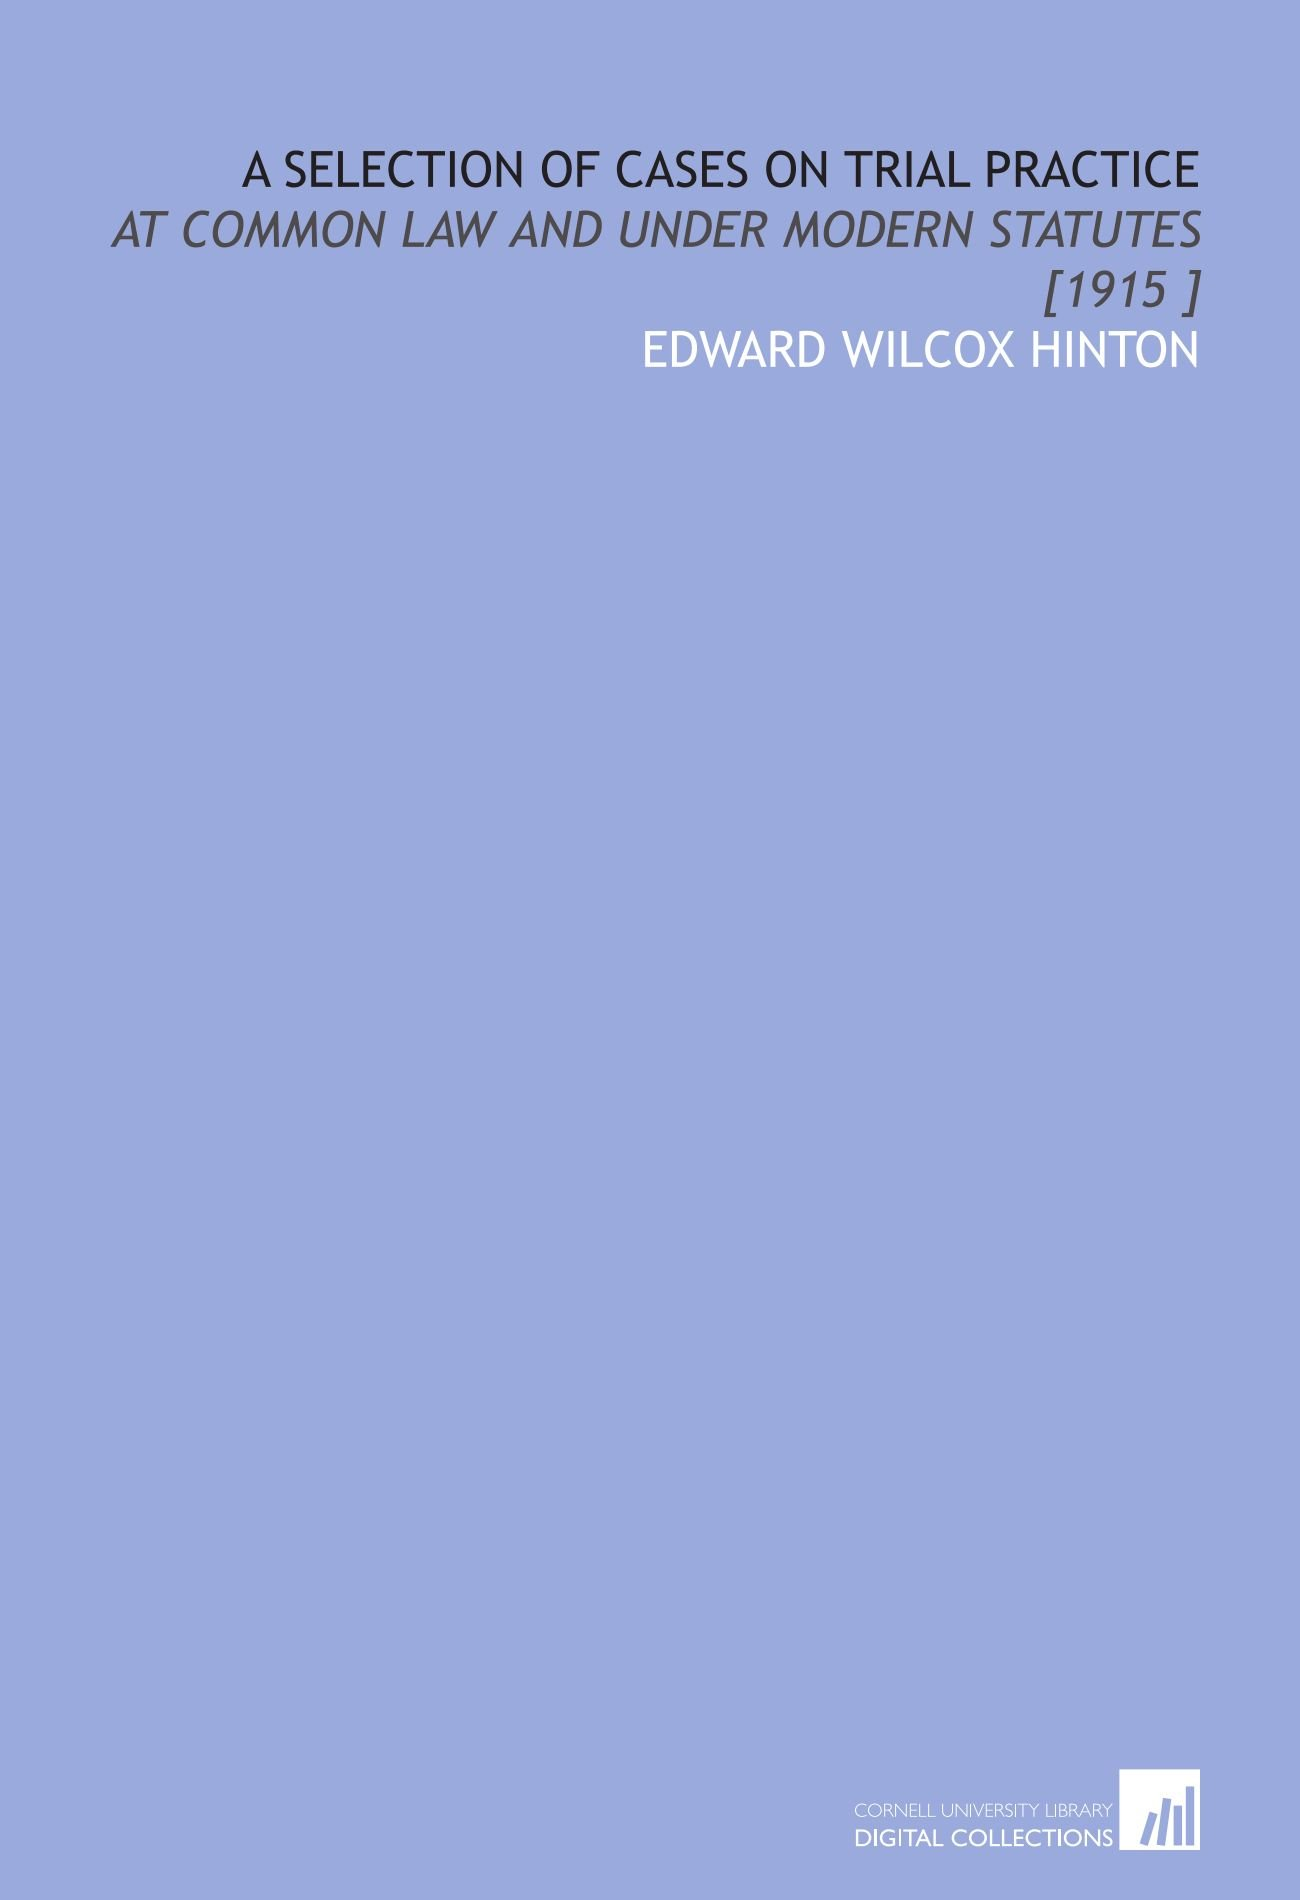 Download A Selection of Cases on Trial Practice: At Common Law and Under Modern Statutes [1915 ] ebook